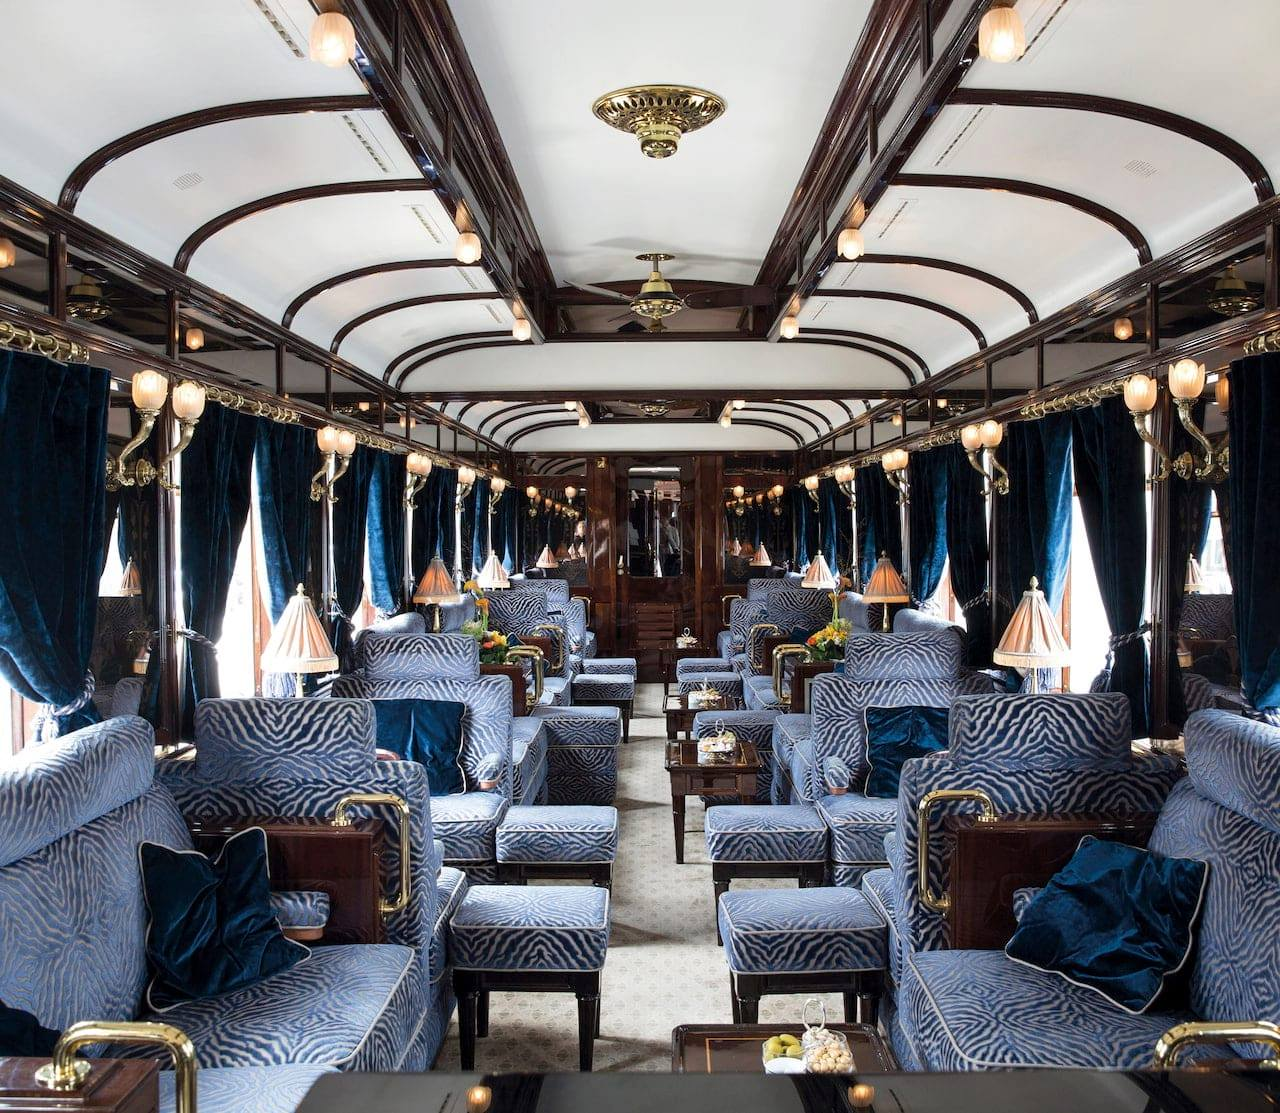 Hiding out in an island palazzo. Luxury Gatsby-style train ride to launch in Europe